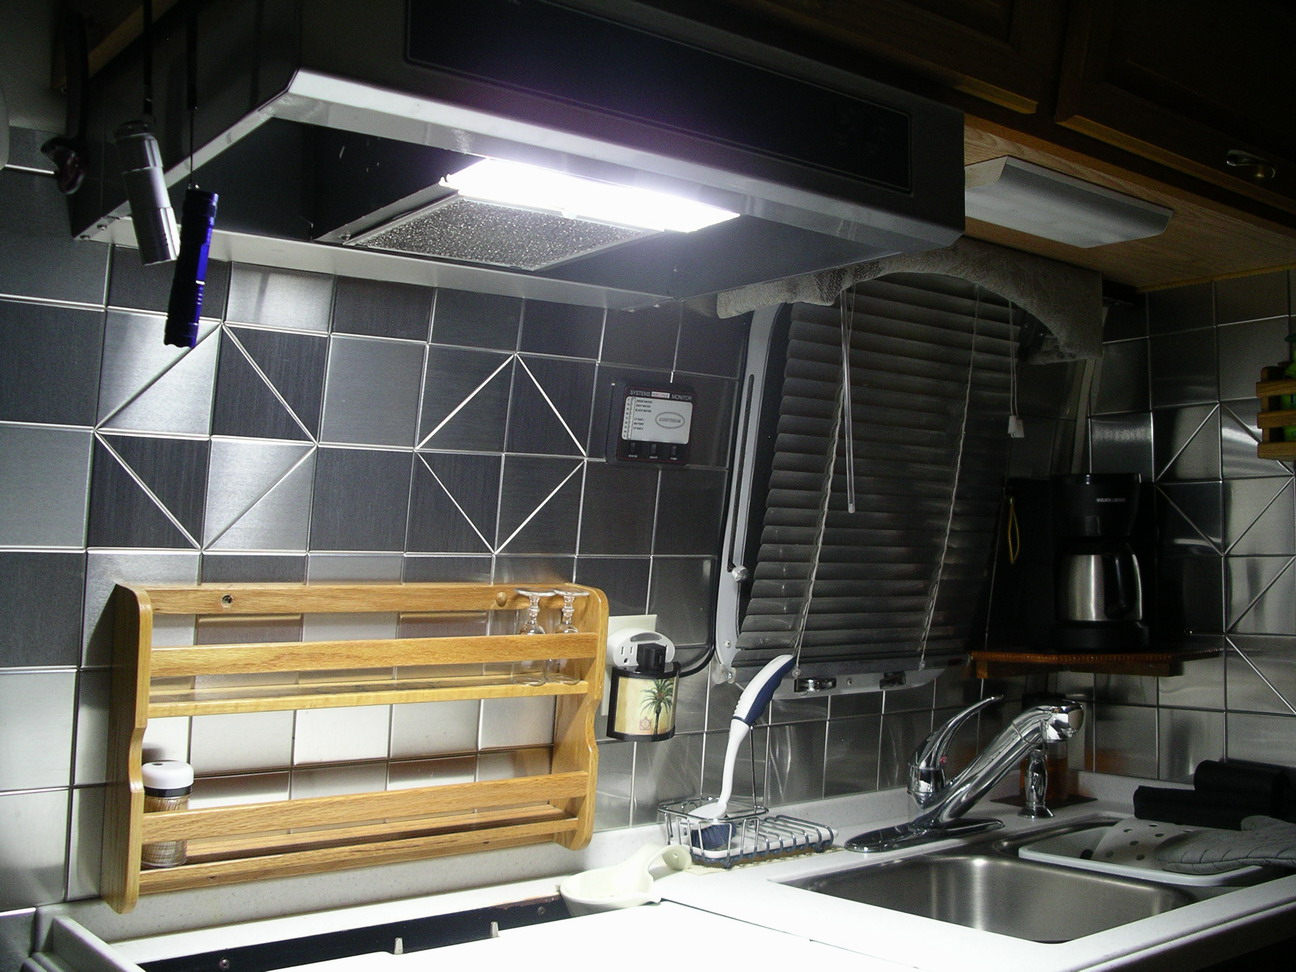 Click image for larger version  Name:stove_led.JPG Views:41 Size:332.1 KB ID:292088